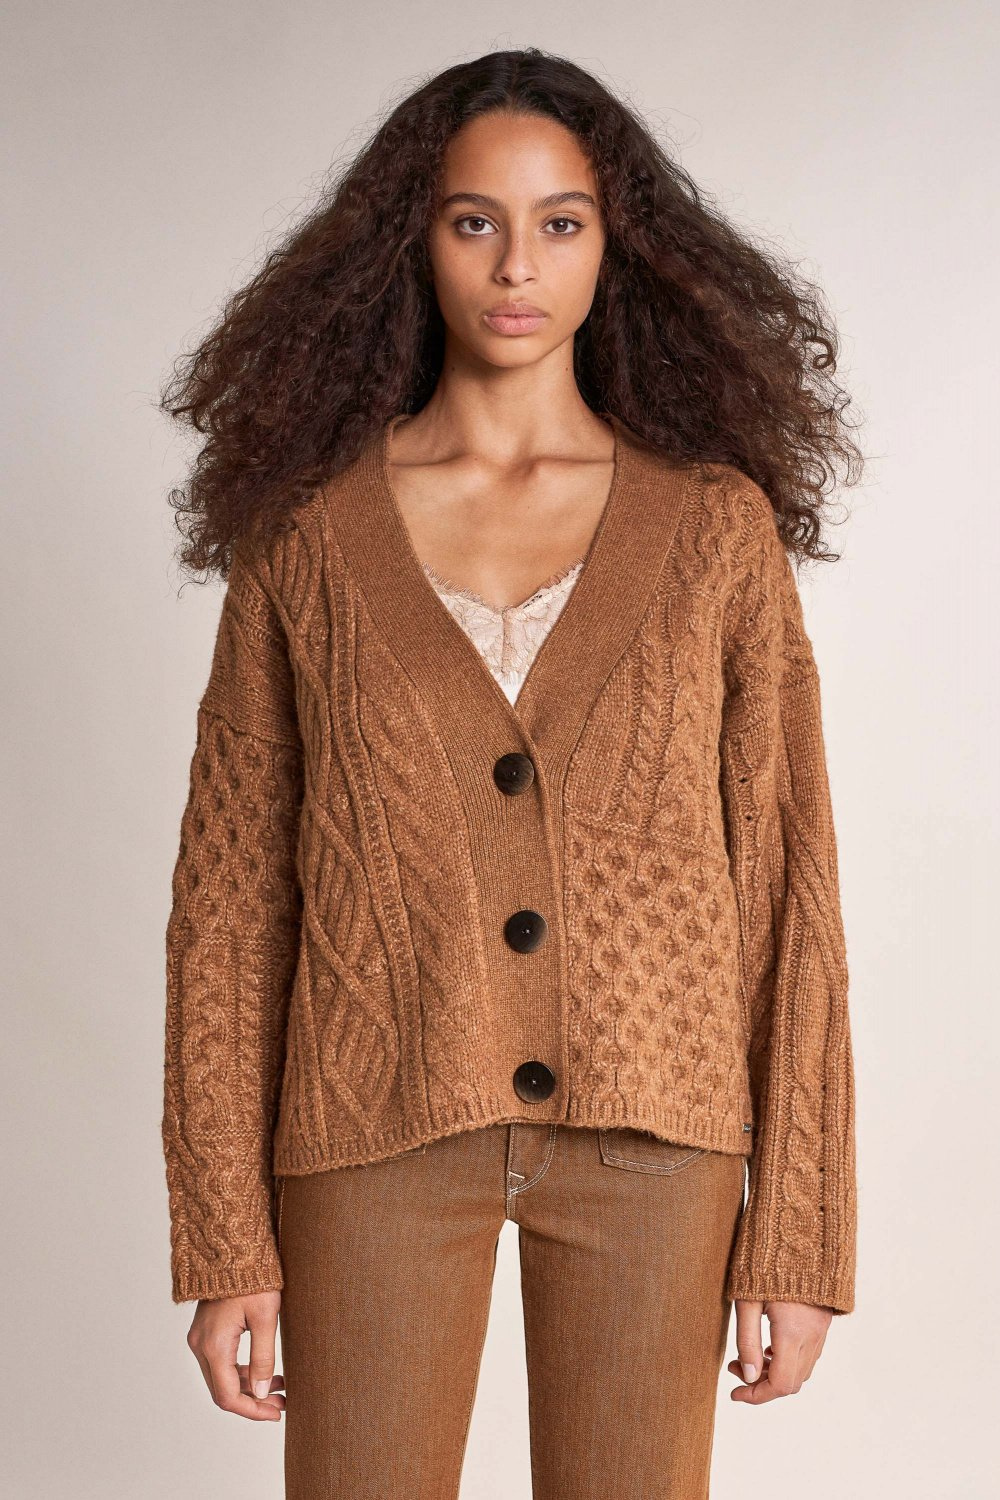 Thick knitted coat with buttons - Salsa